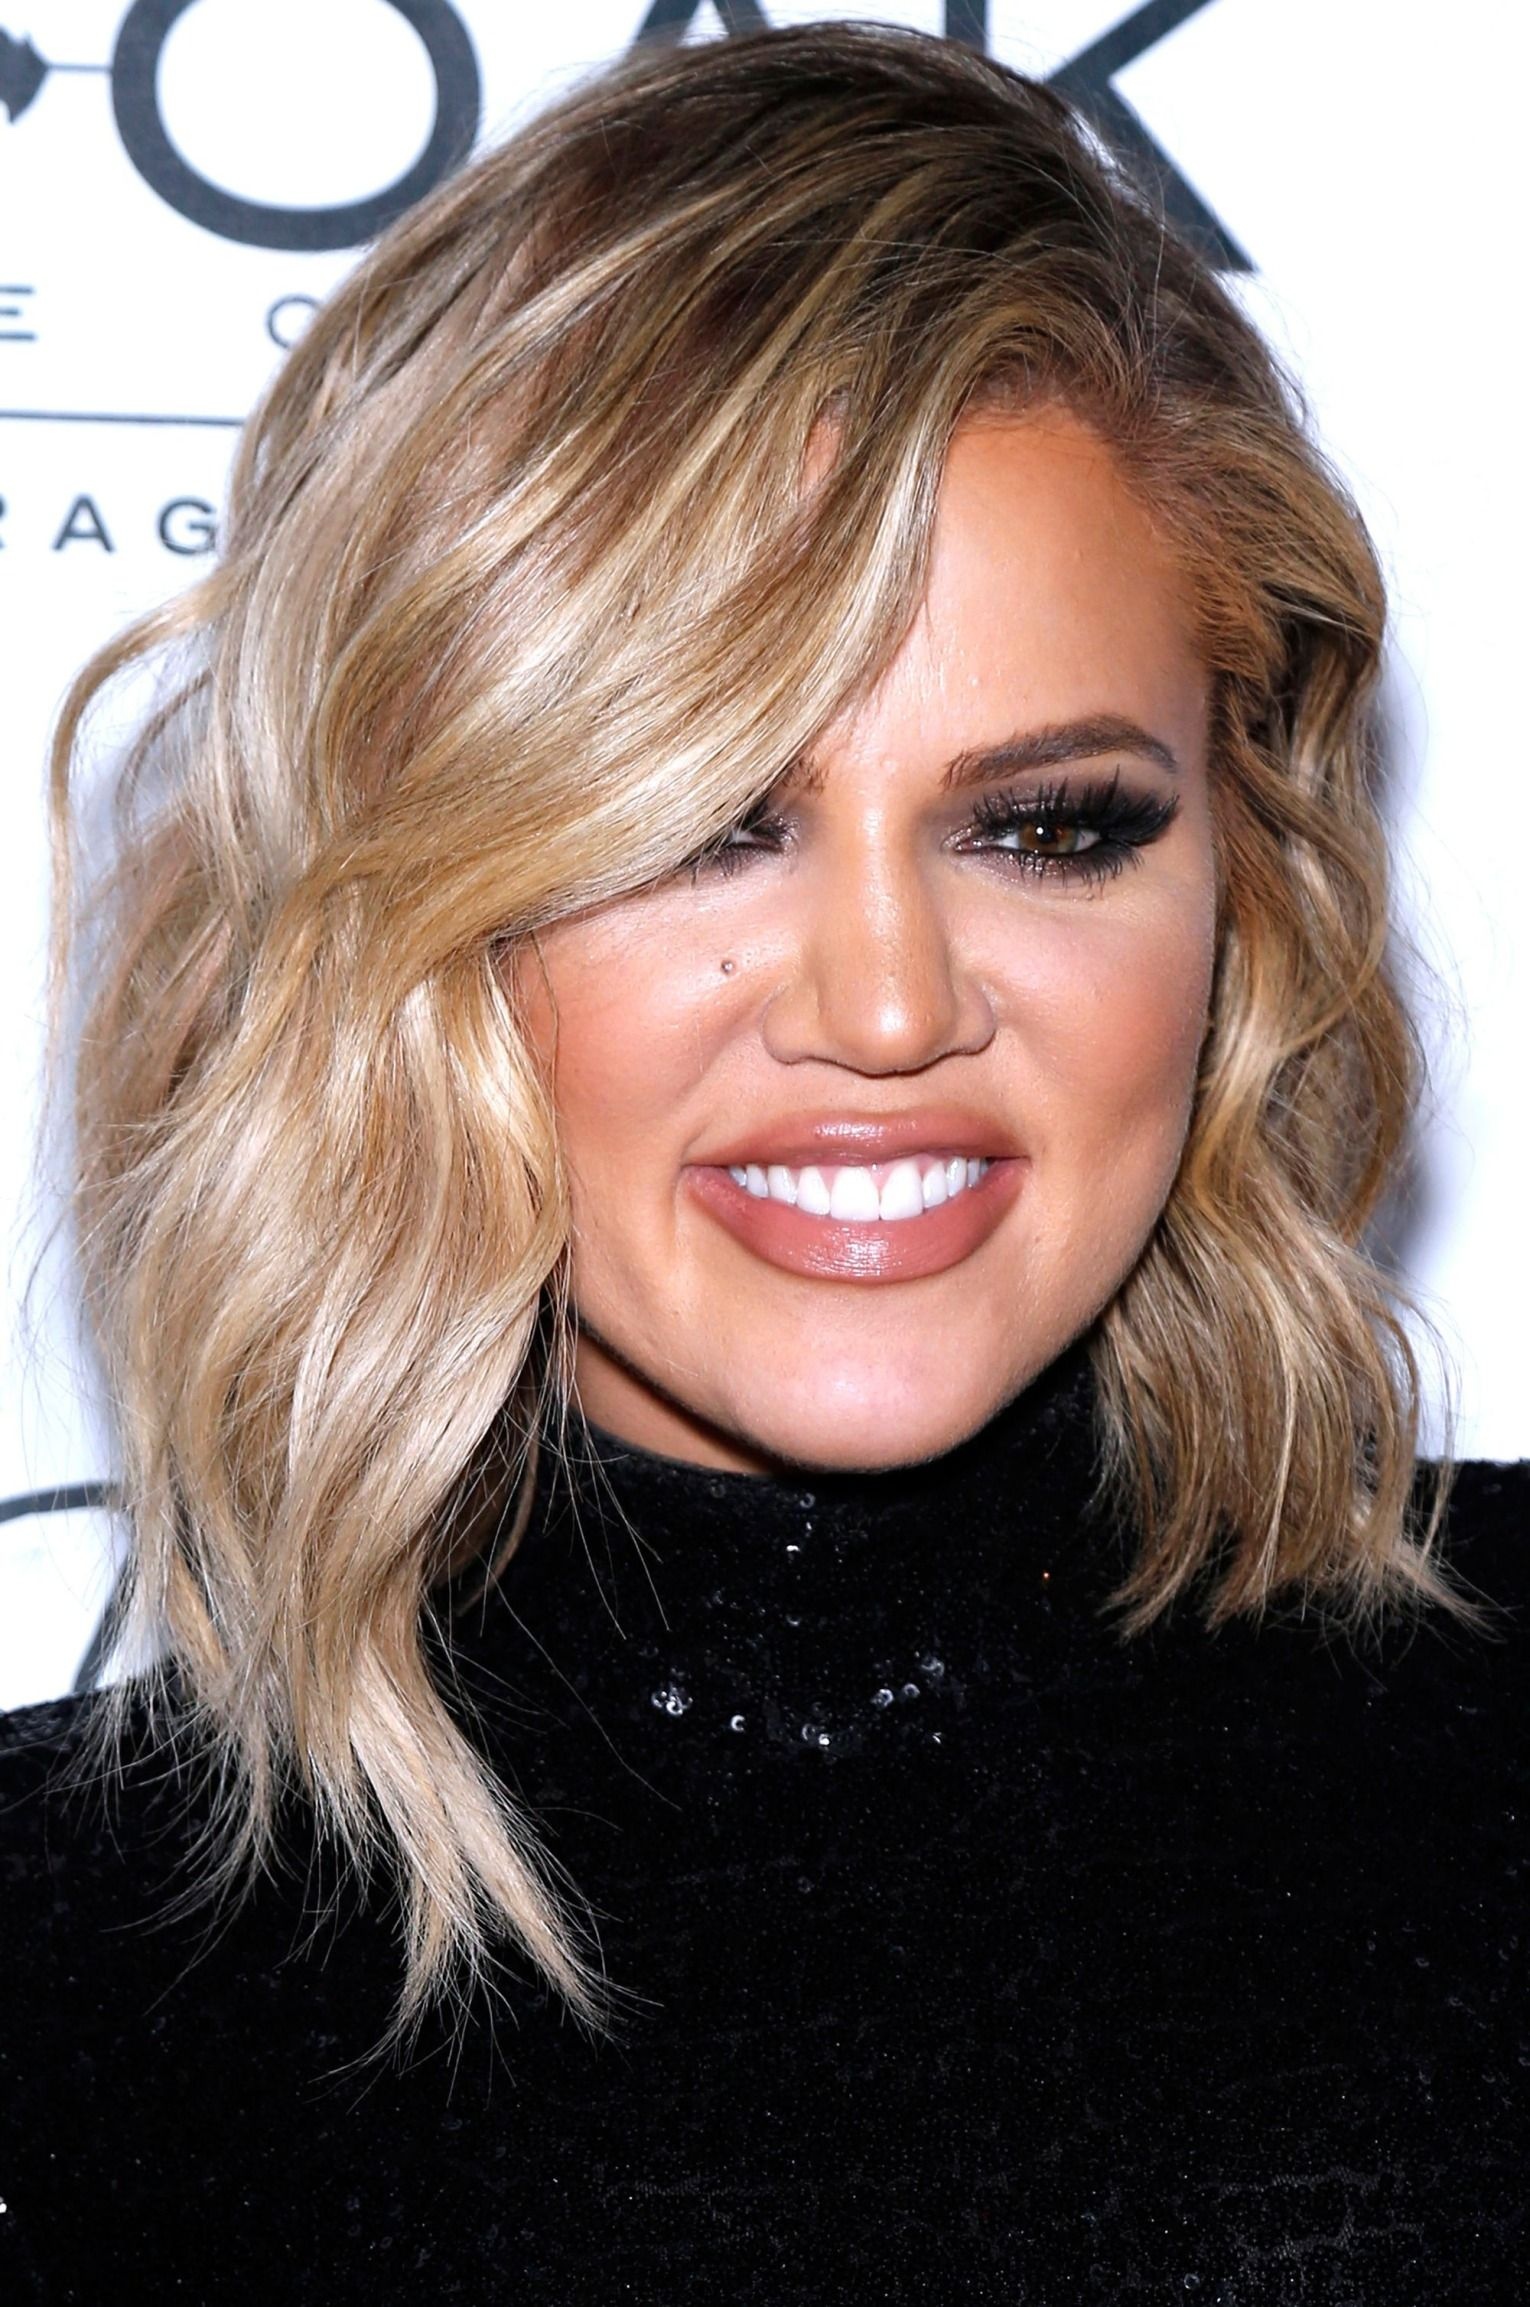 People Are Livid Over This Instagram Khloé Posted From Cuba